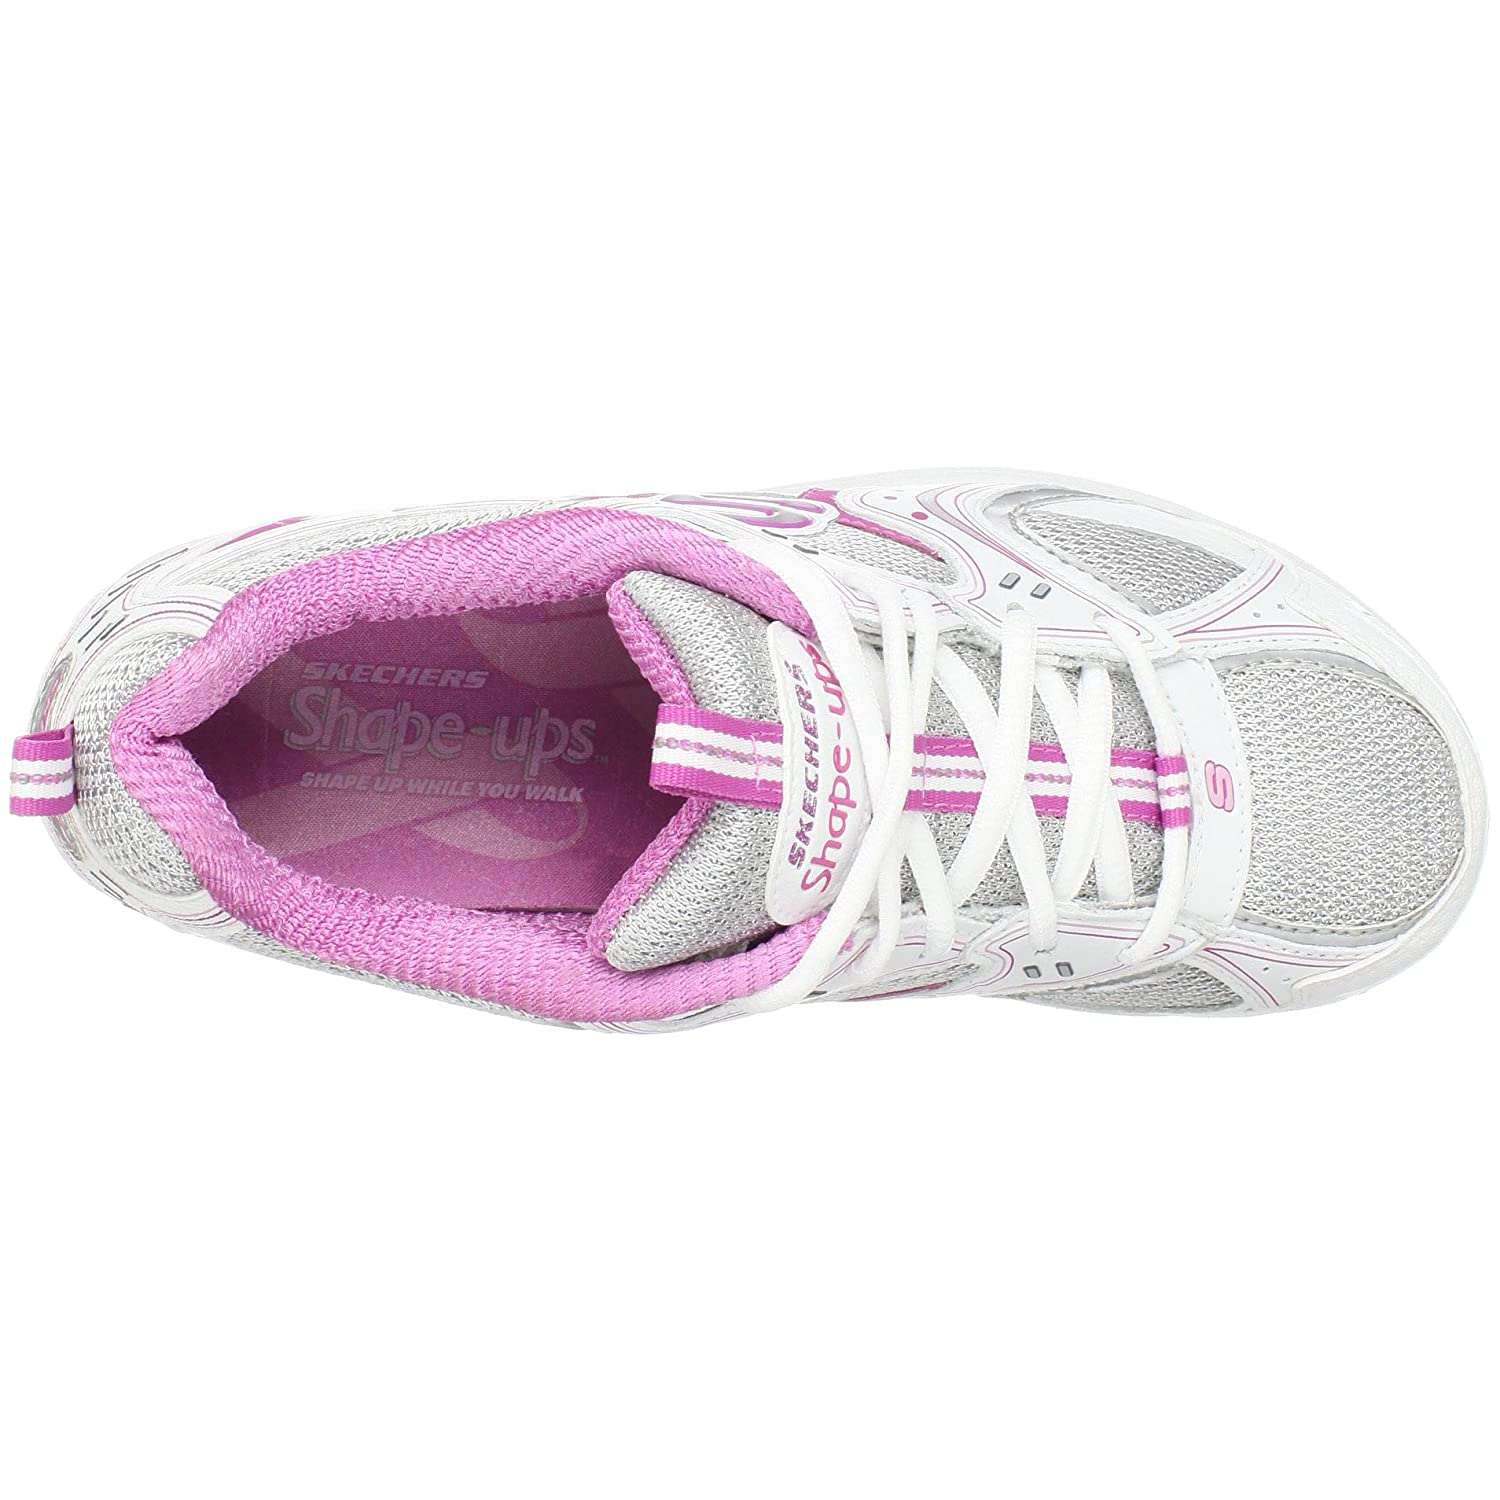 Skechers Forma Ups Zapatos Para Mujer 4plnqBr42